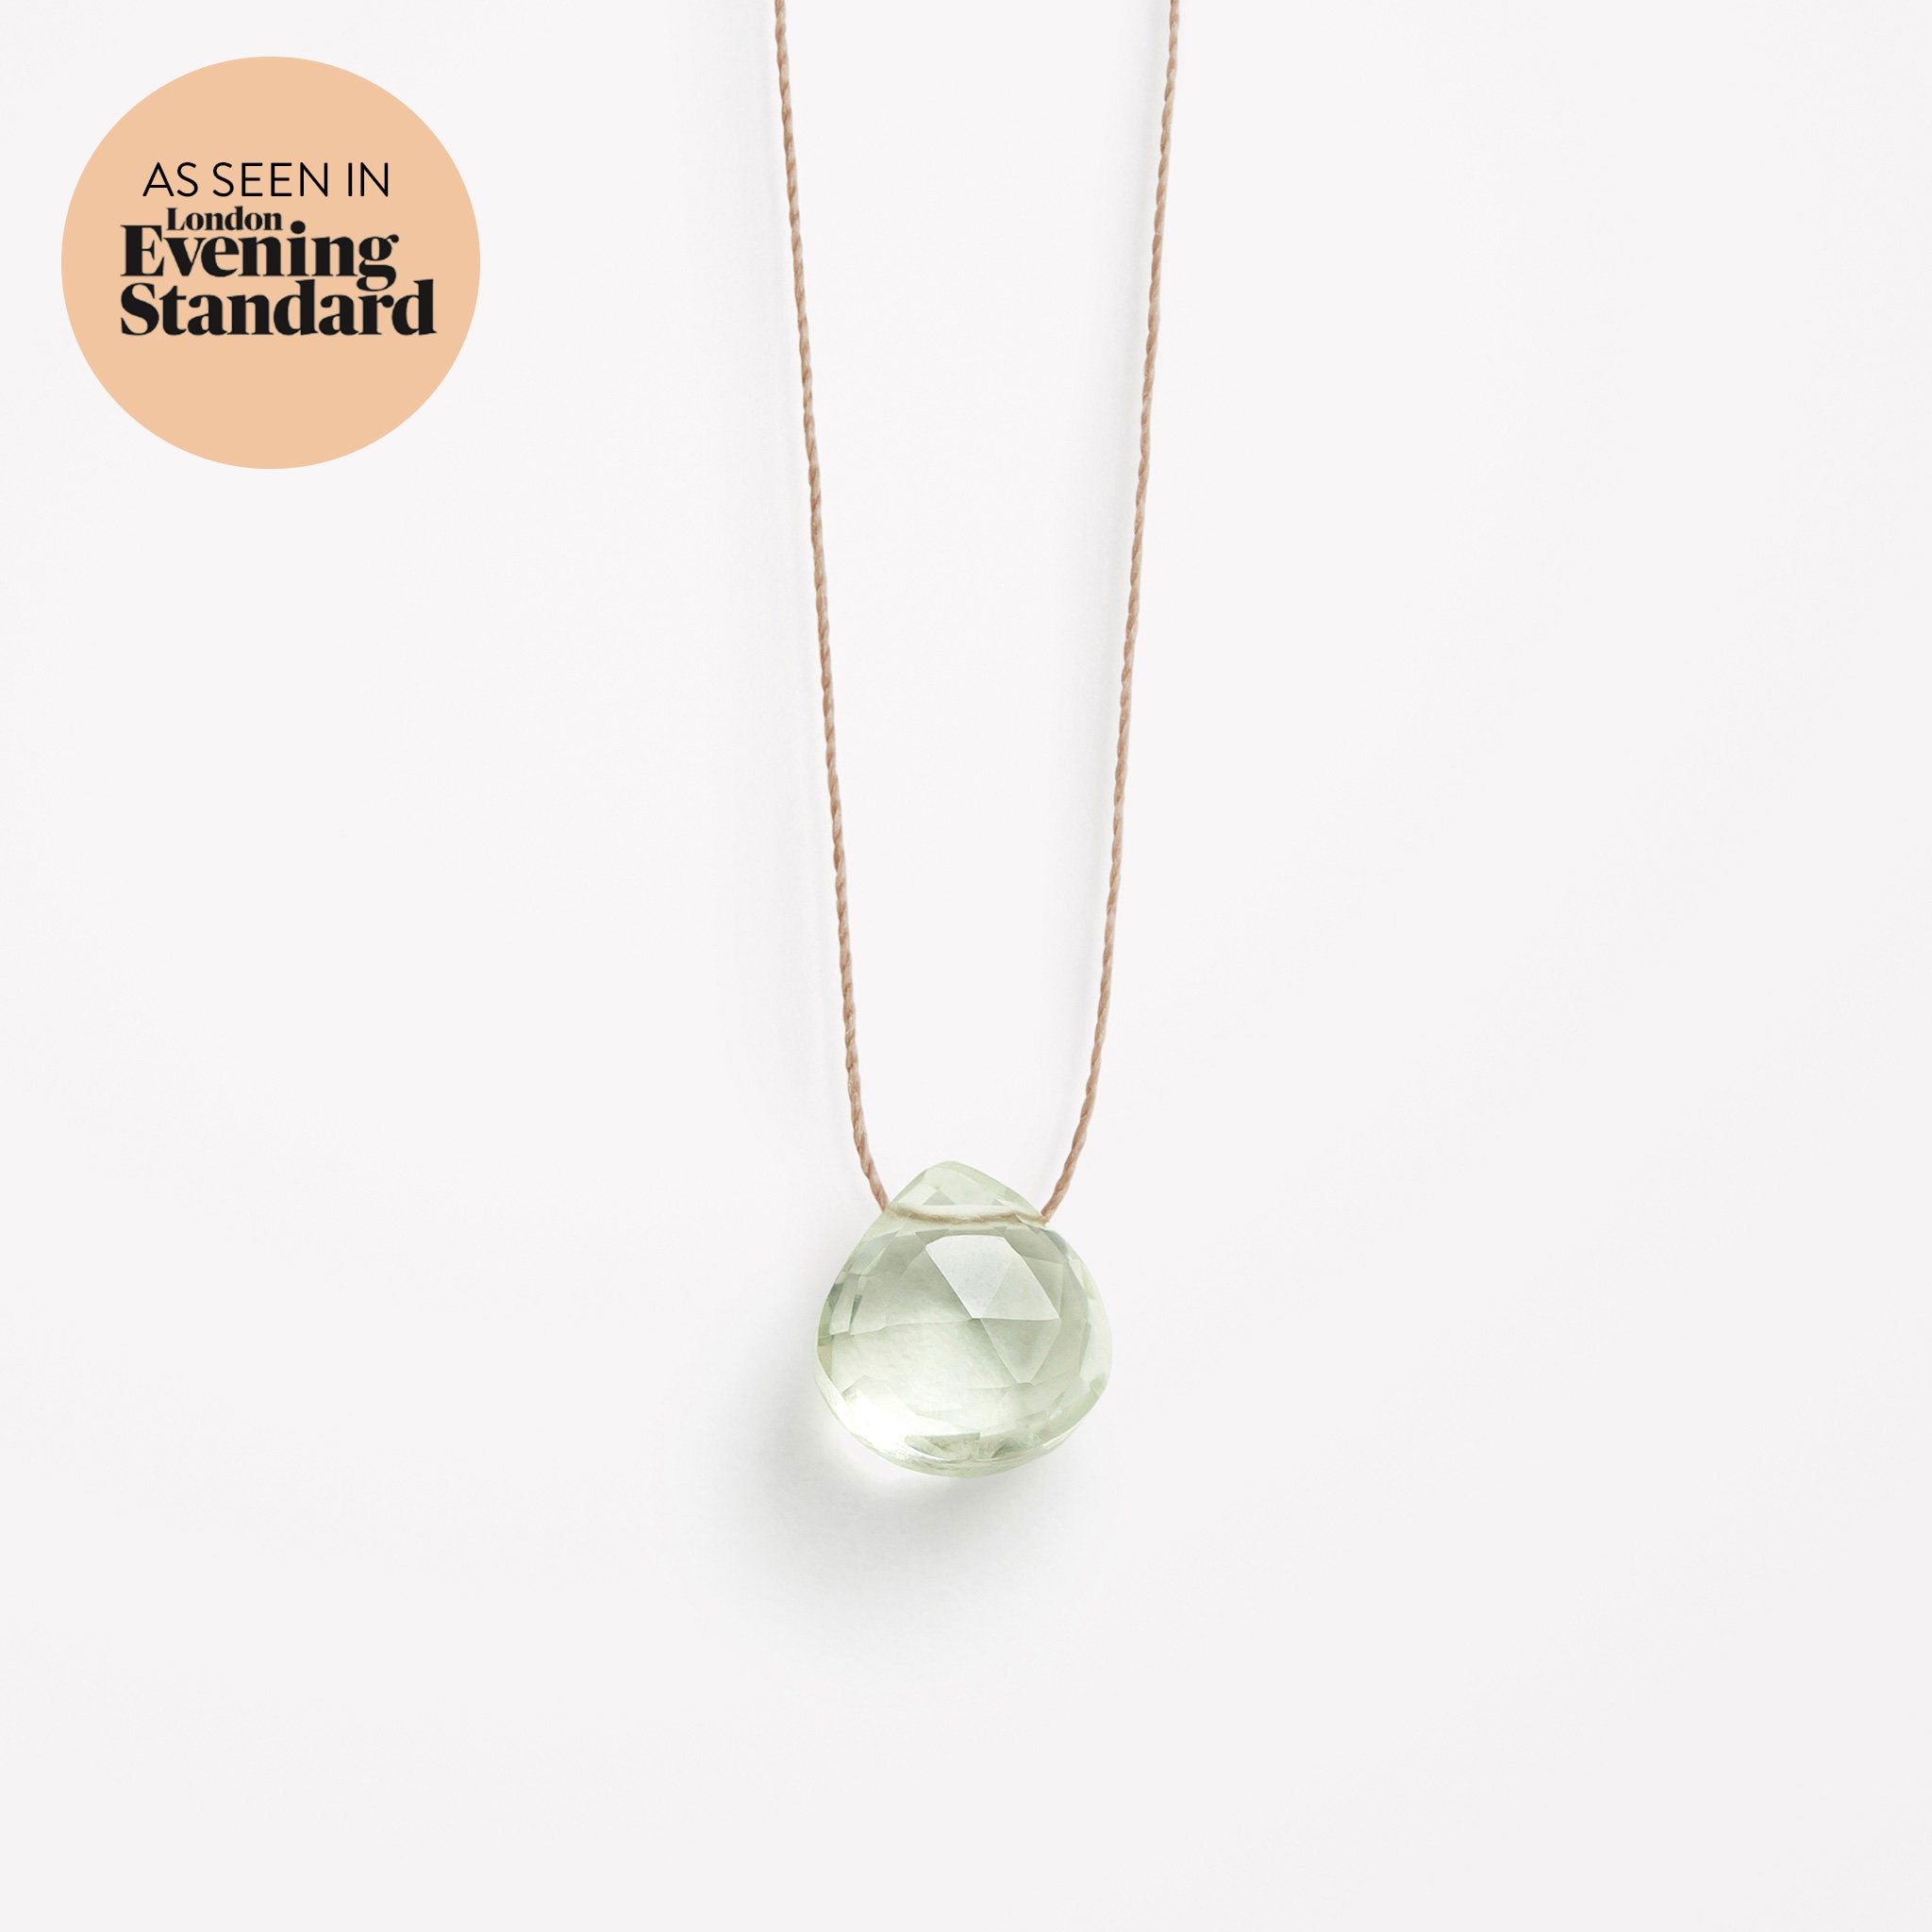 Wanderlust Life Ethically Handmade jewellery made in the UK. Minimalist gold and fine cord jewellery. mint green amethyst fine cord necklace. As seen in London Evening Standard